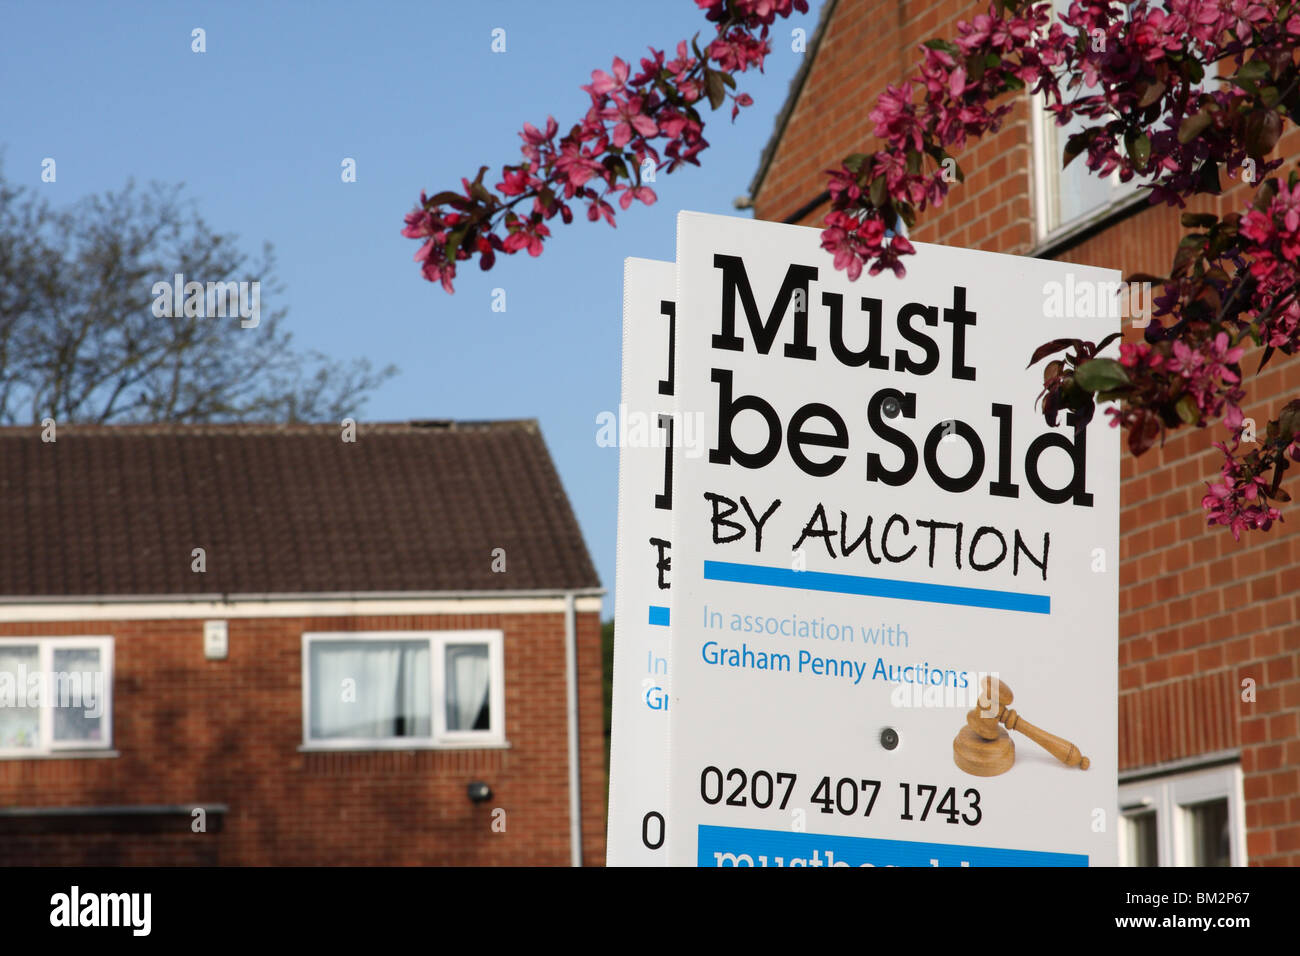 A house for sale by auction in a U.K. city. Stock Photo